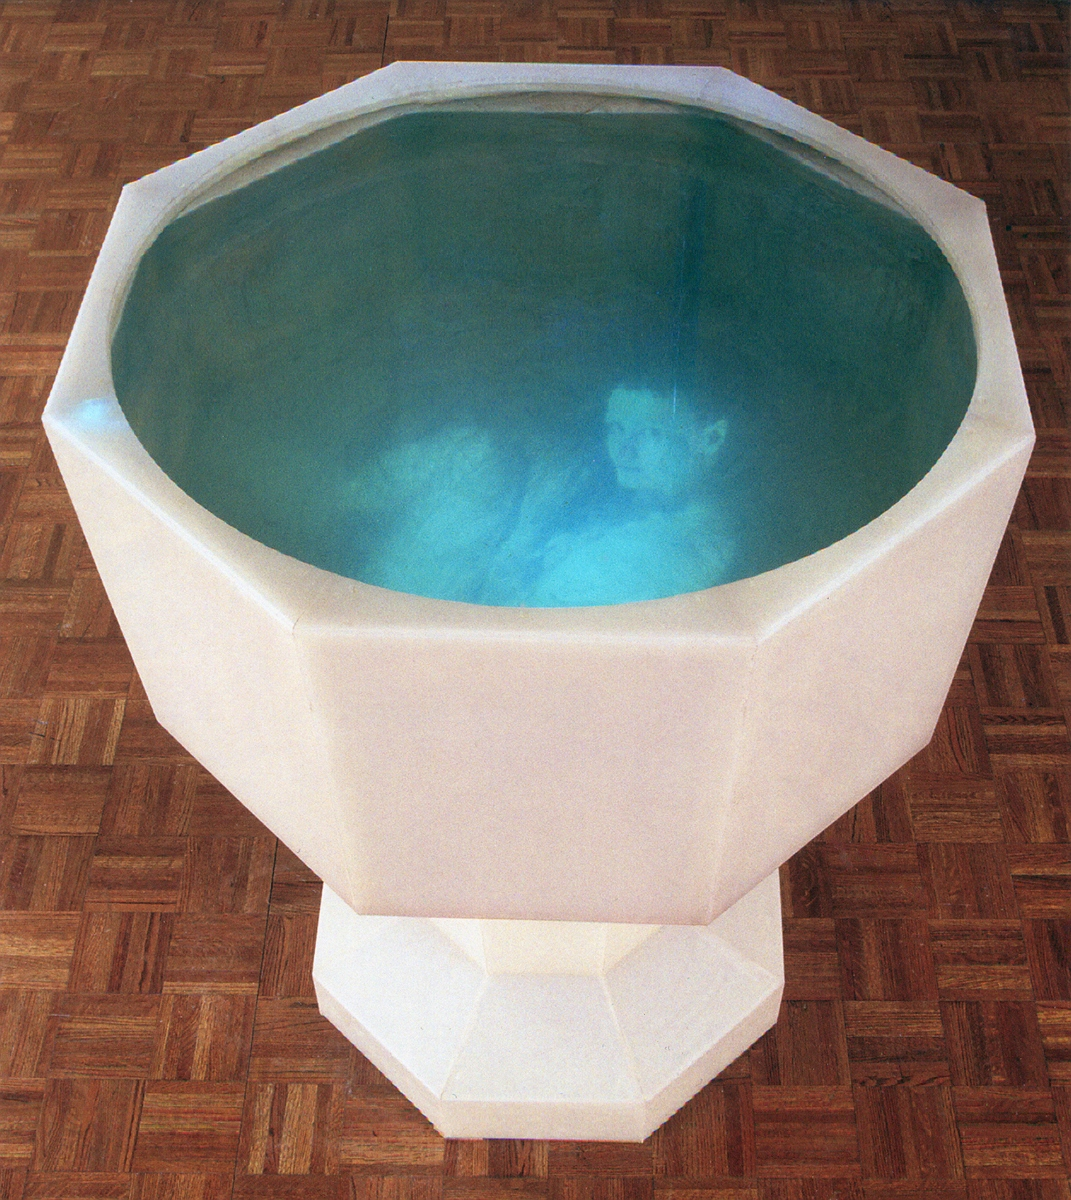 Monika Weiss,  White Chalice (Ennoia) , 2004; polypropylene, fiberglass, water, video projection, sound, 39x39x50 in. © Monika Weiss 2004. Collection Asher Remy-Toledo, NYC